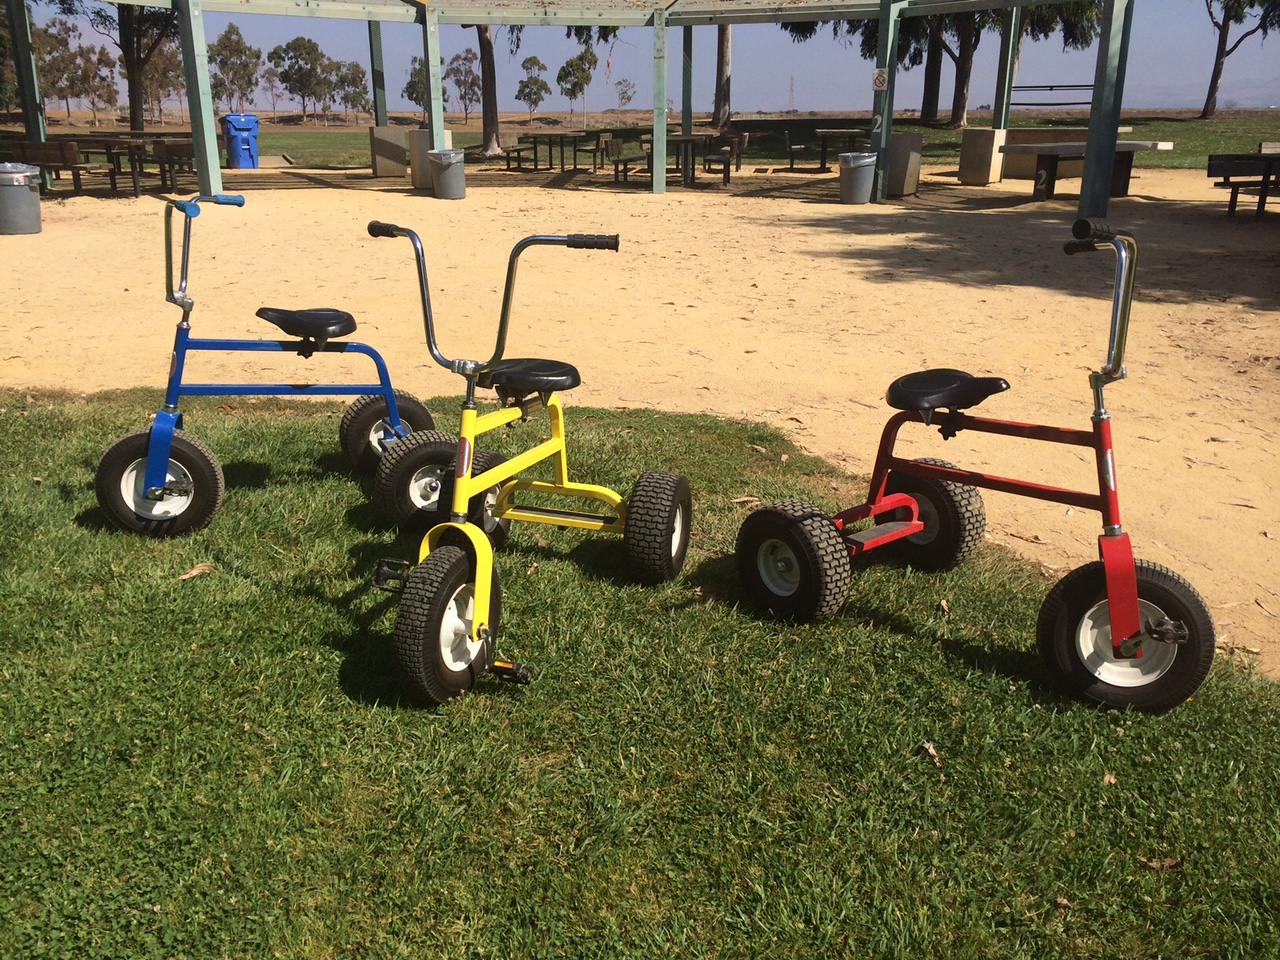 Giant Tricycle Racing Rental Over 21 Party Rentals